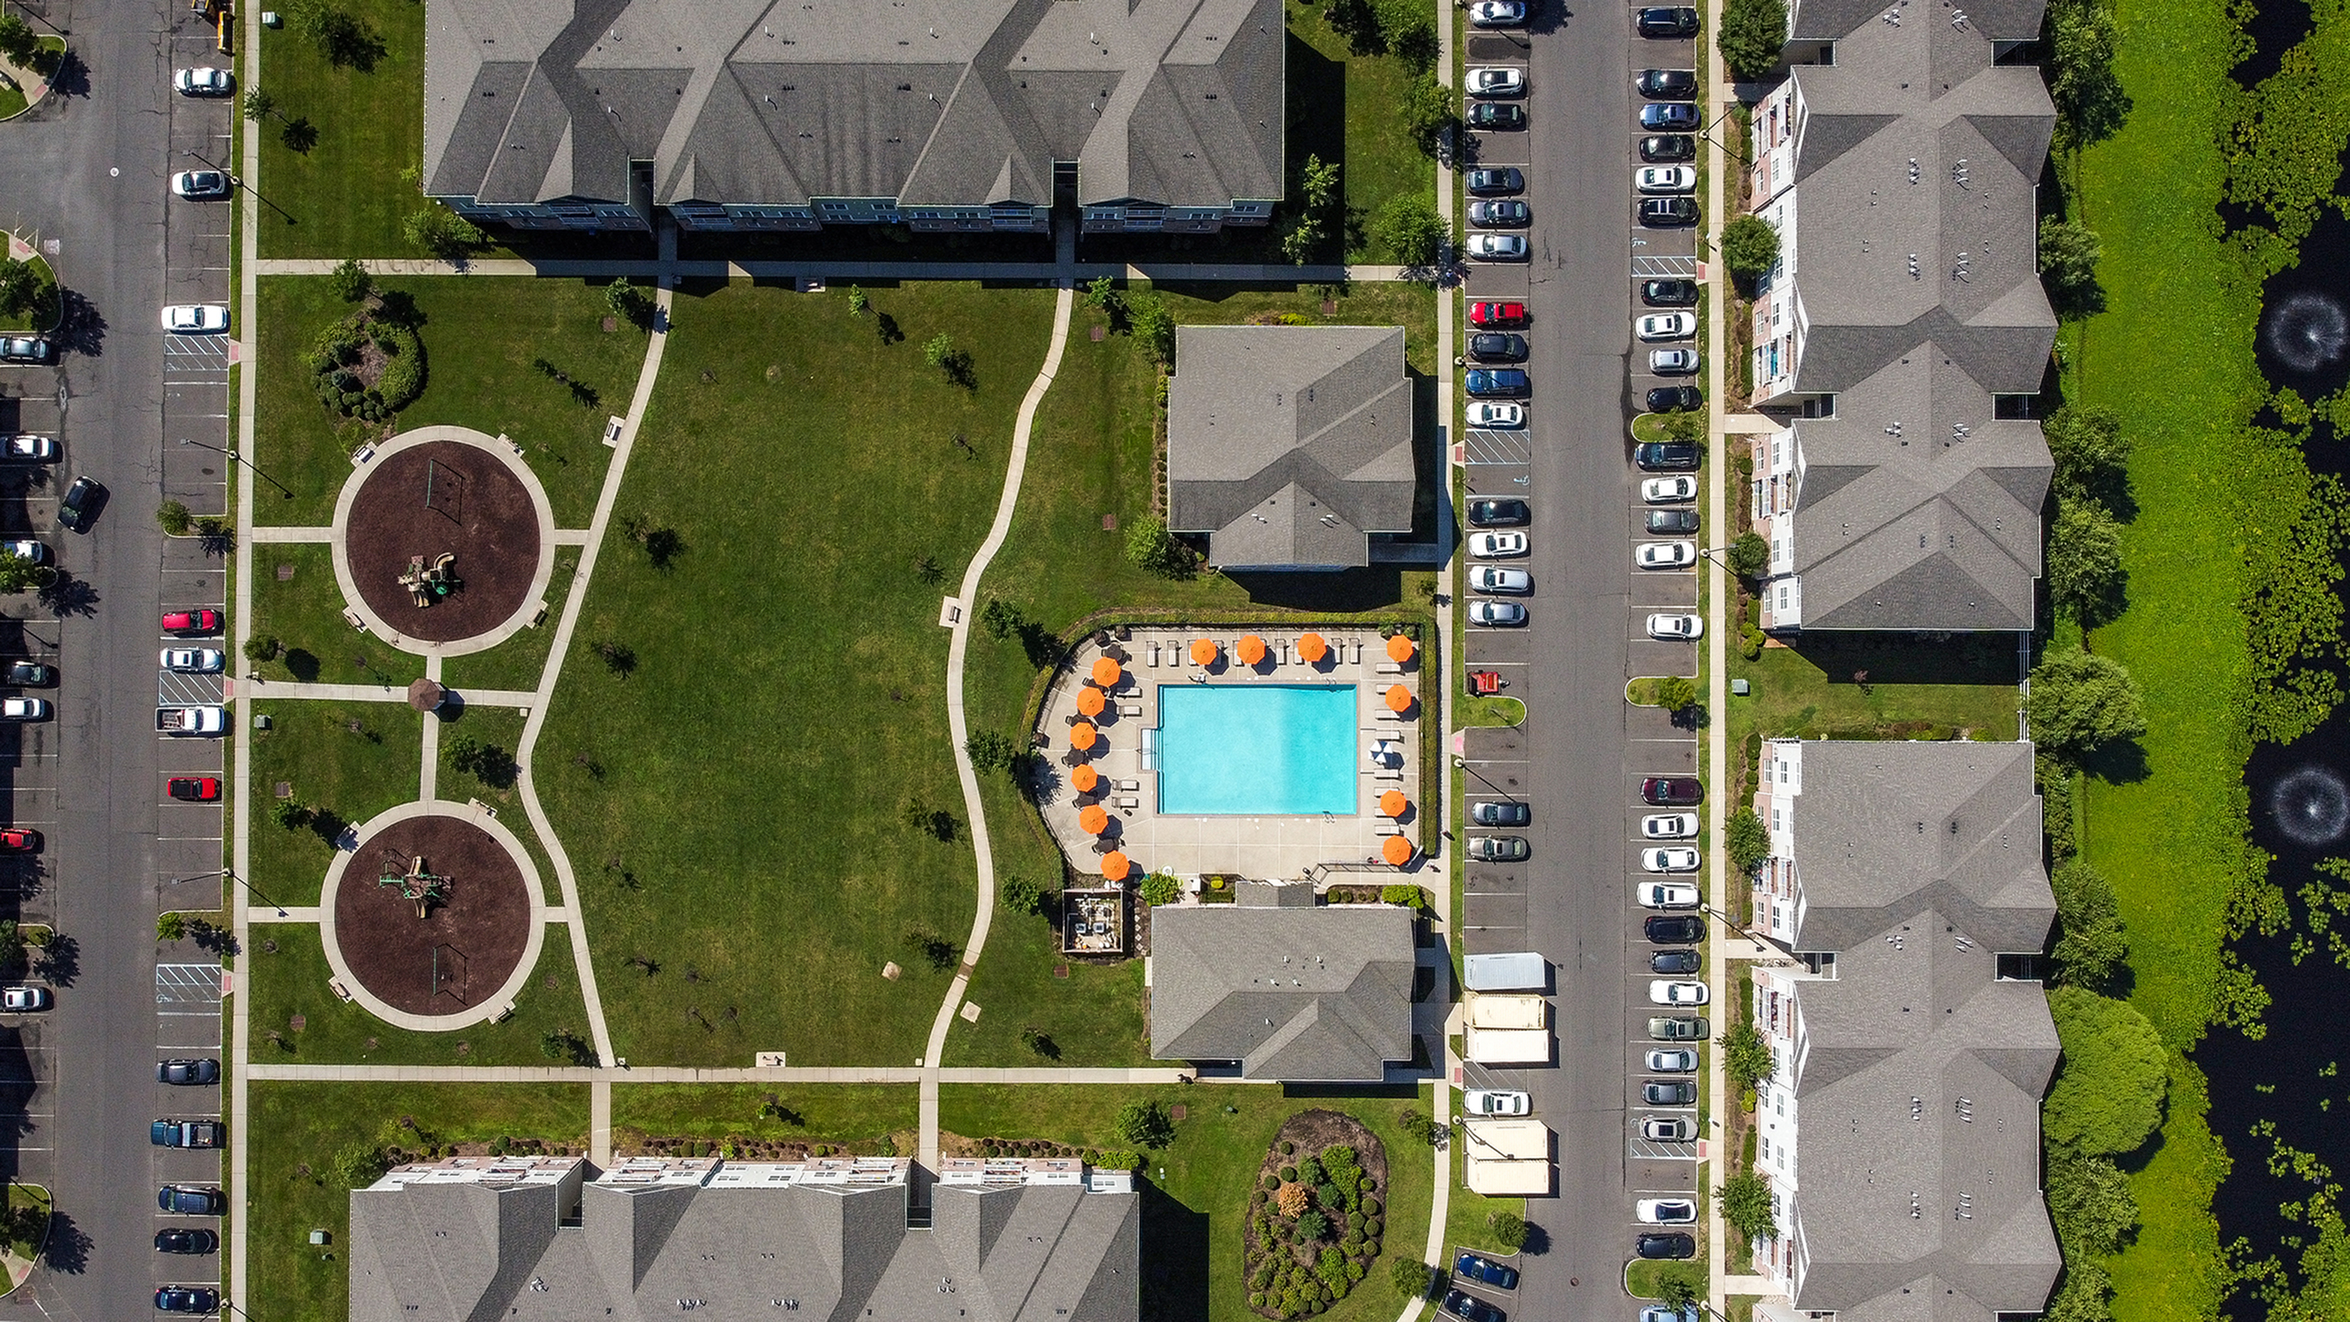 apartments with pool and playground